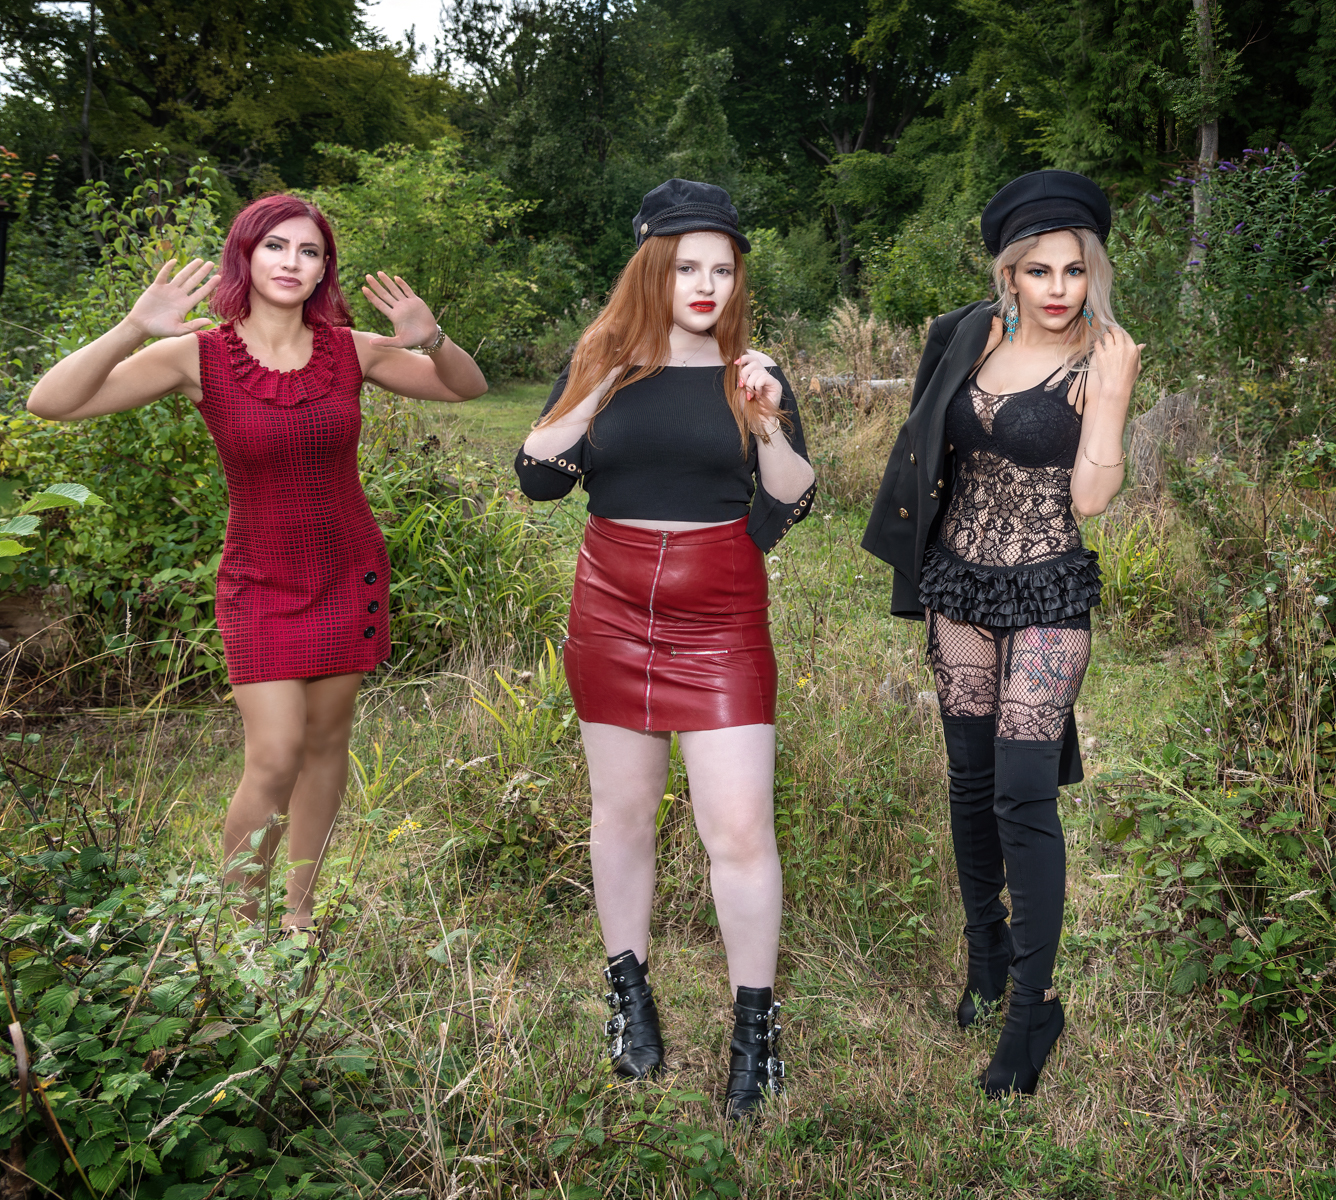 Model : Sarah, lily, Krisztina by Lawrence Homewood EFIAP